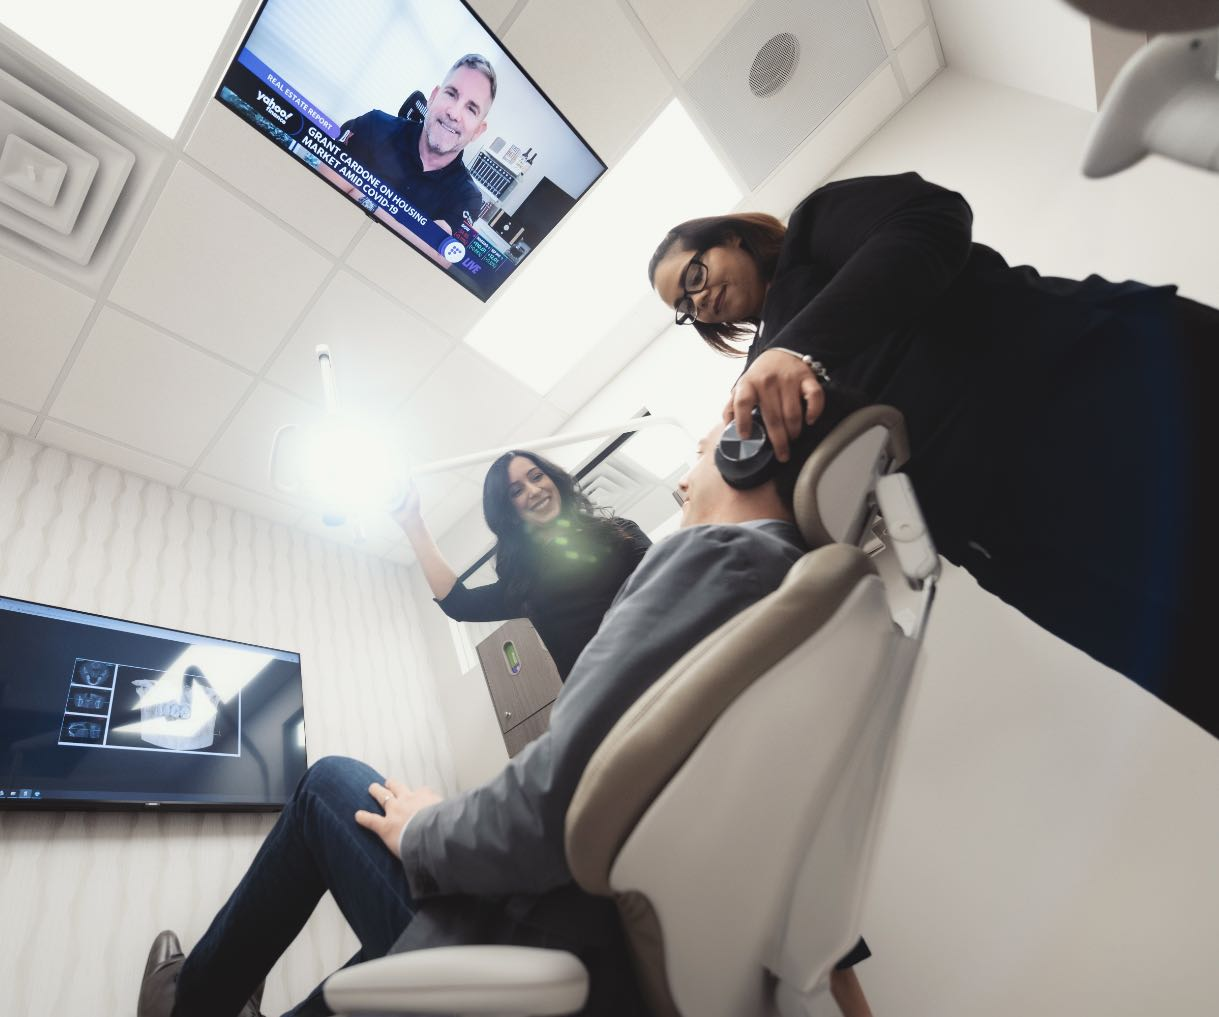 Photo of a patient getting comfortable in the operatory with headphones and watching television